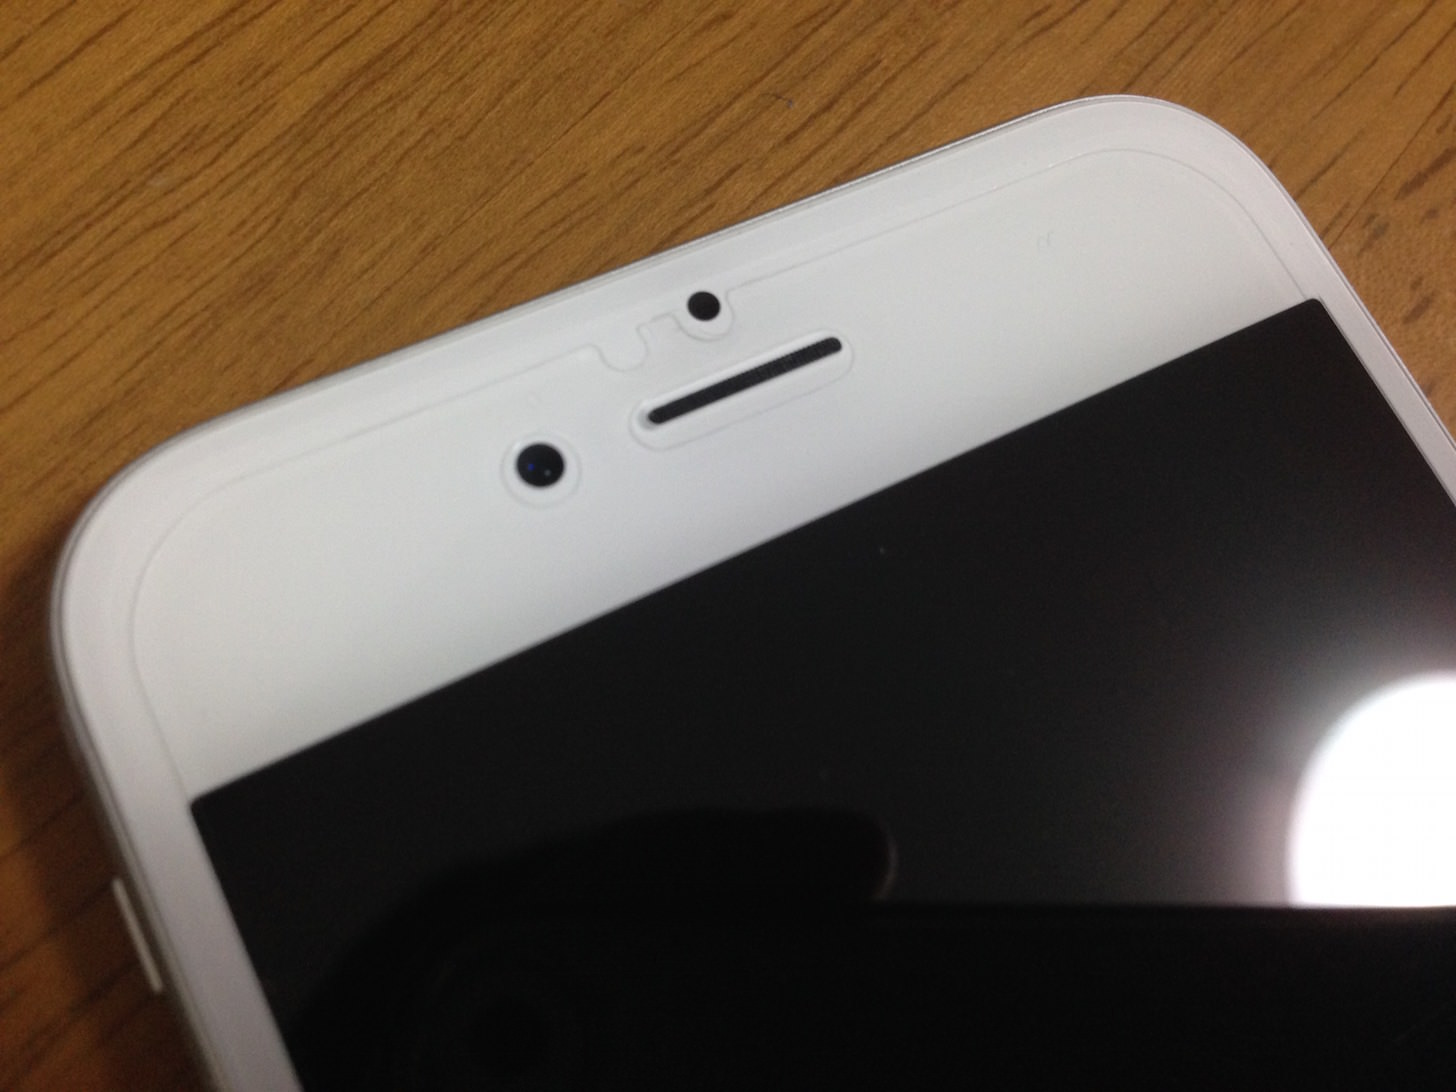 iPhone6 保護フィルム貼った2